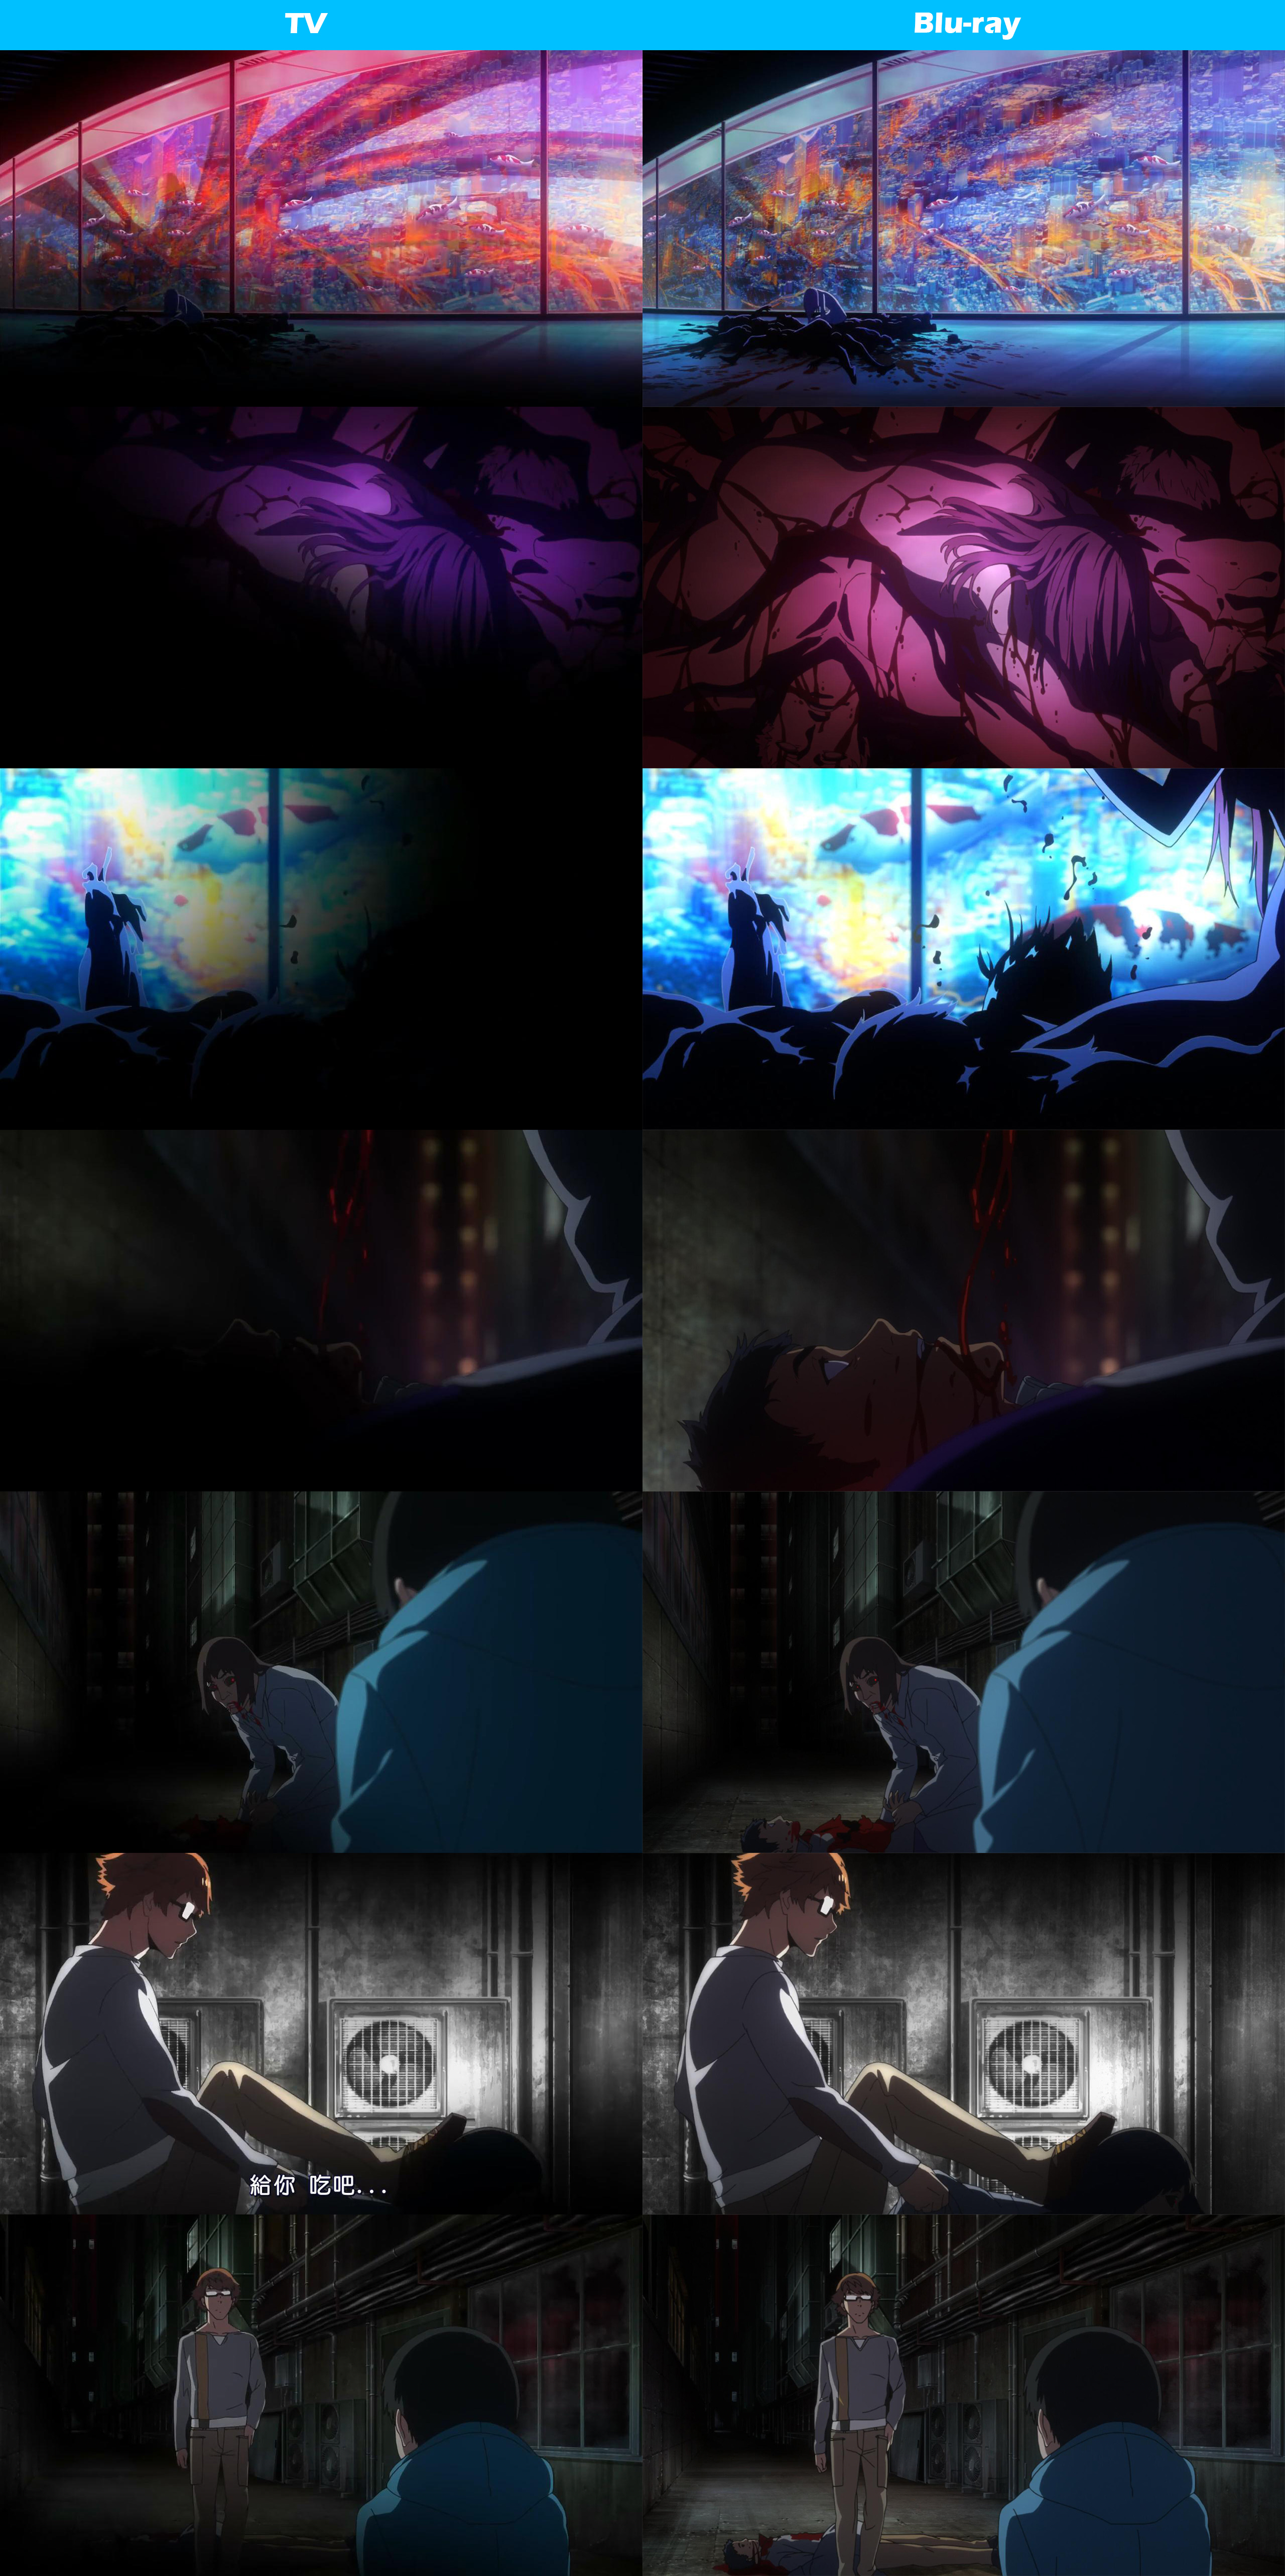 Tokyo-Ghoul_haruhichan.com---TV-and-Blu-ray-Comparison-Image-1